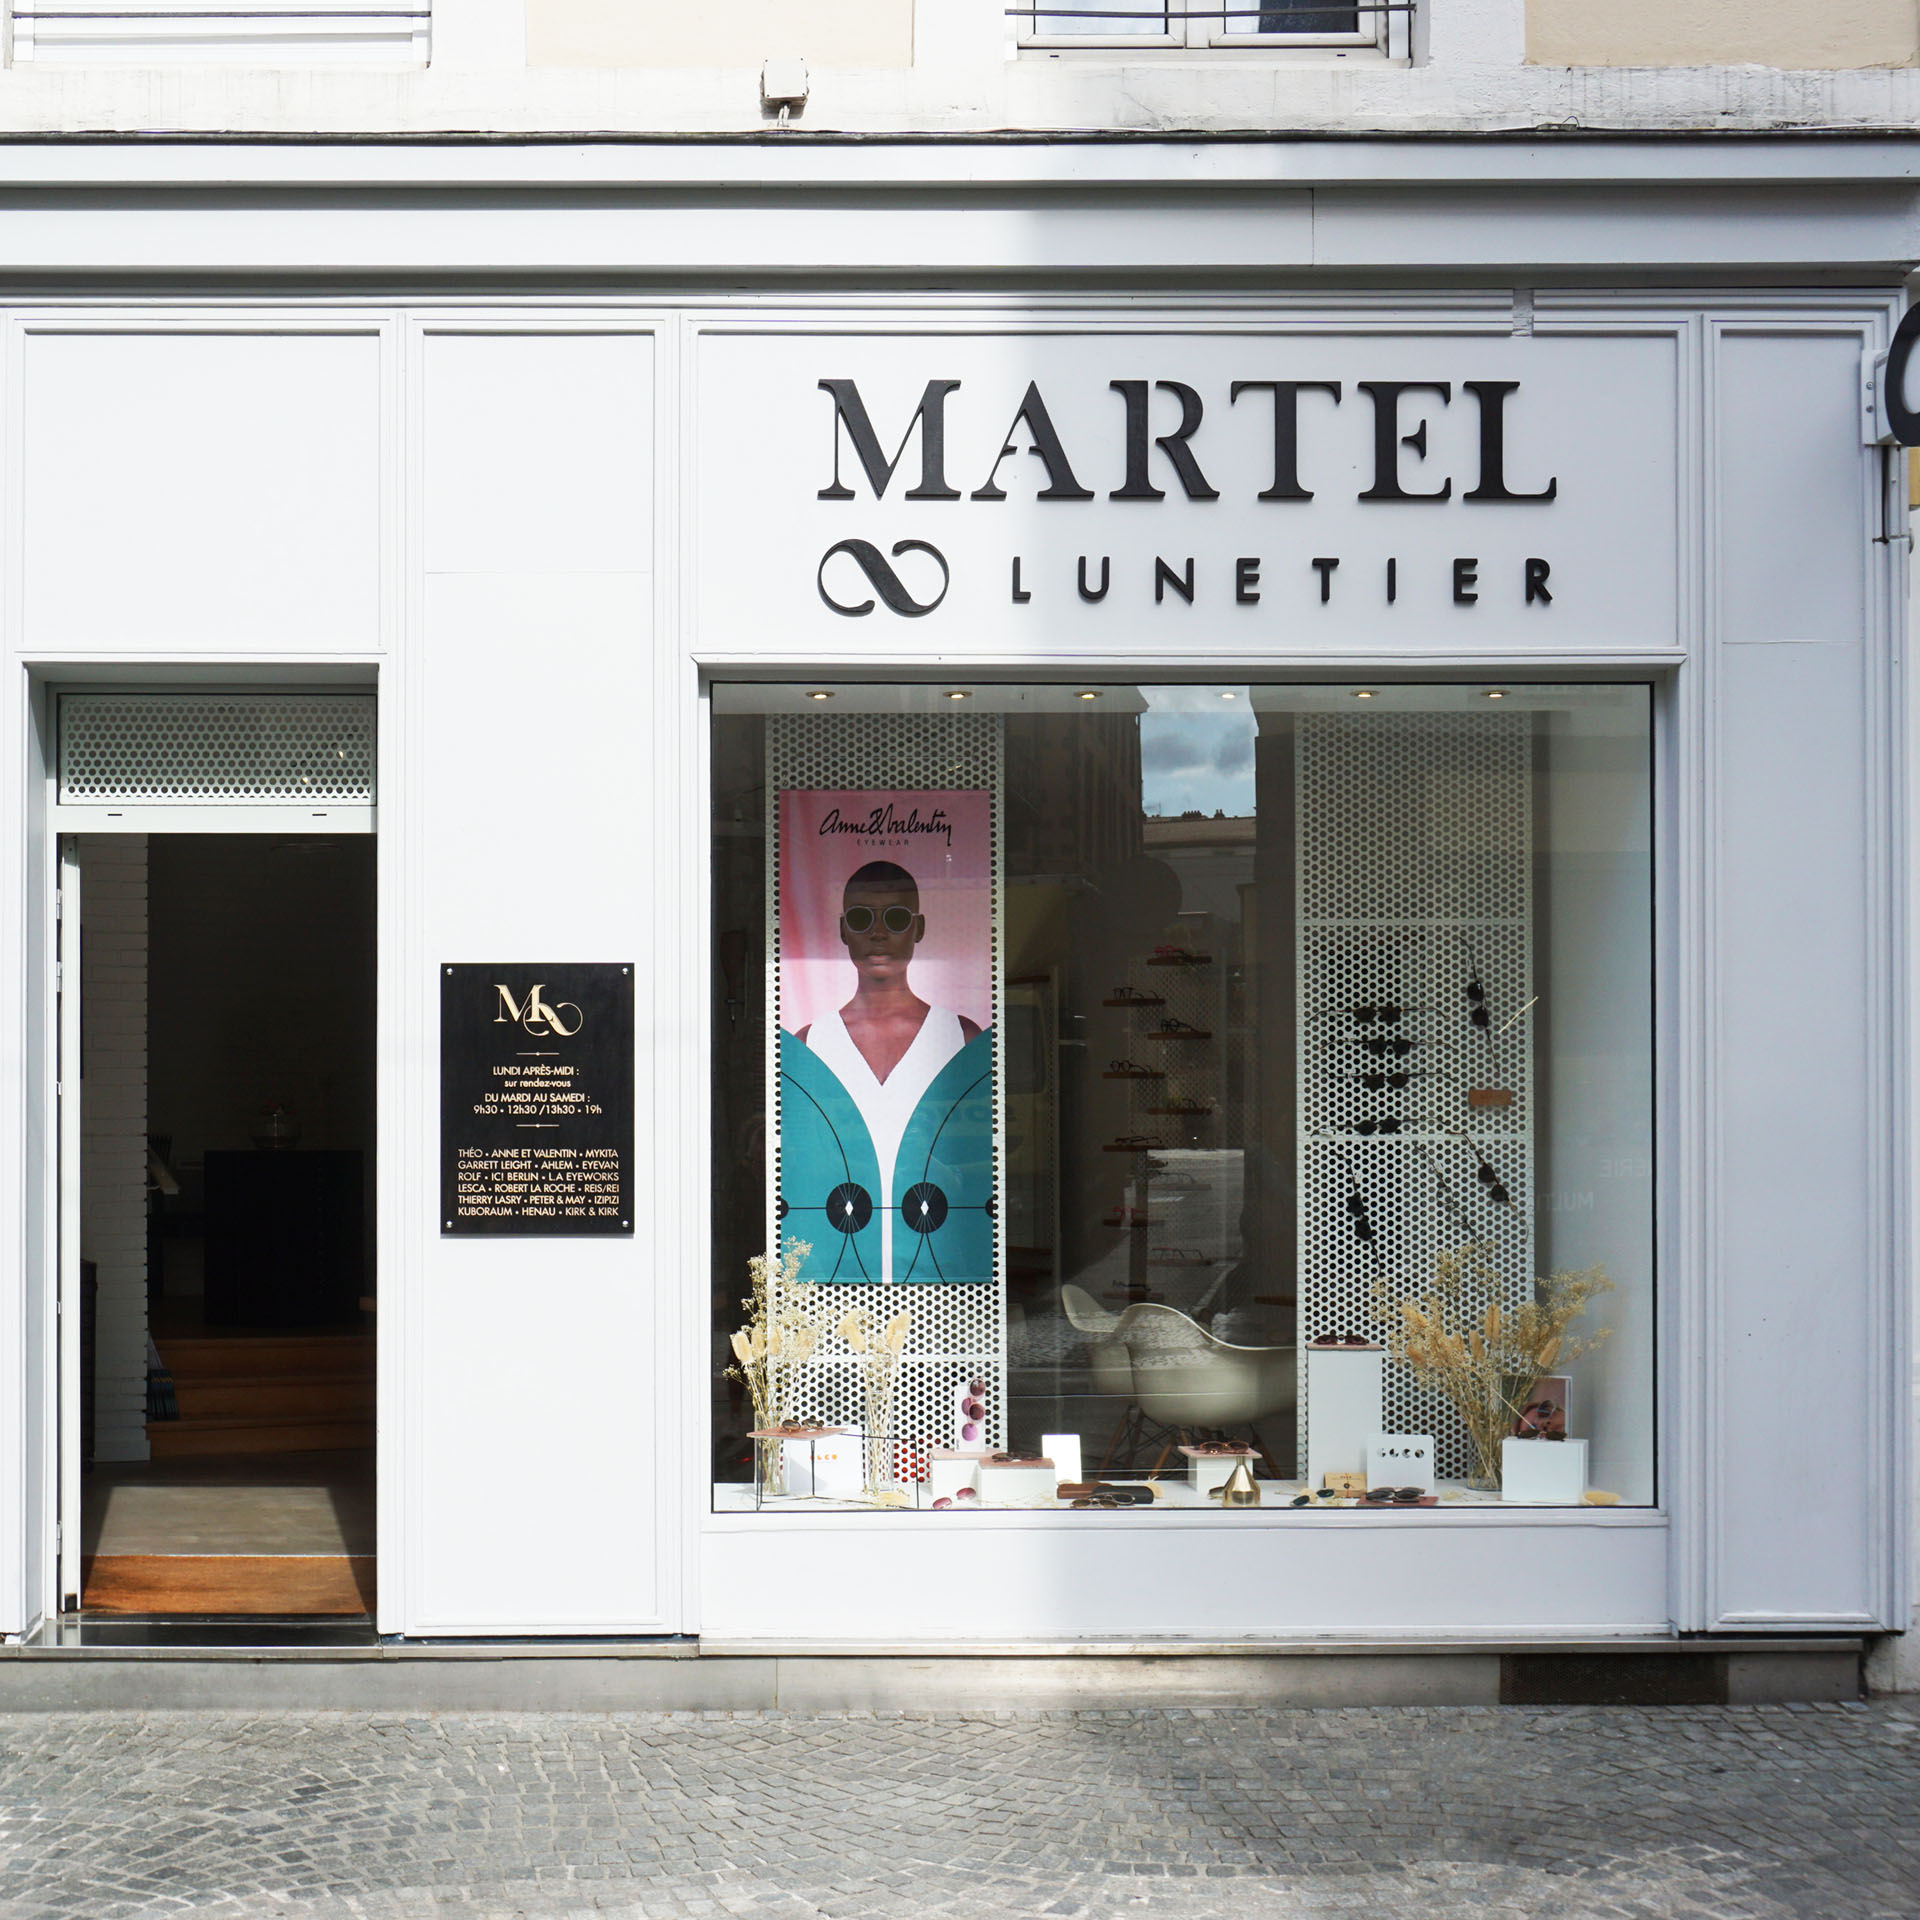 Martel – Local temporaire – 2019 06 20 – 4